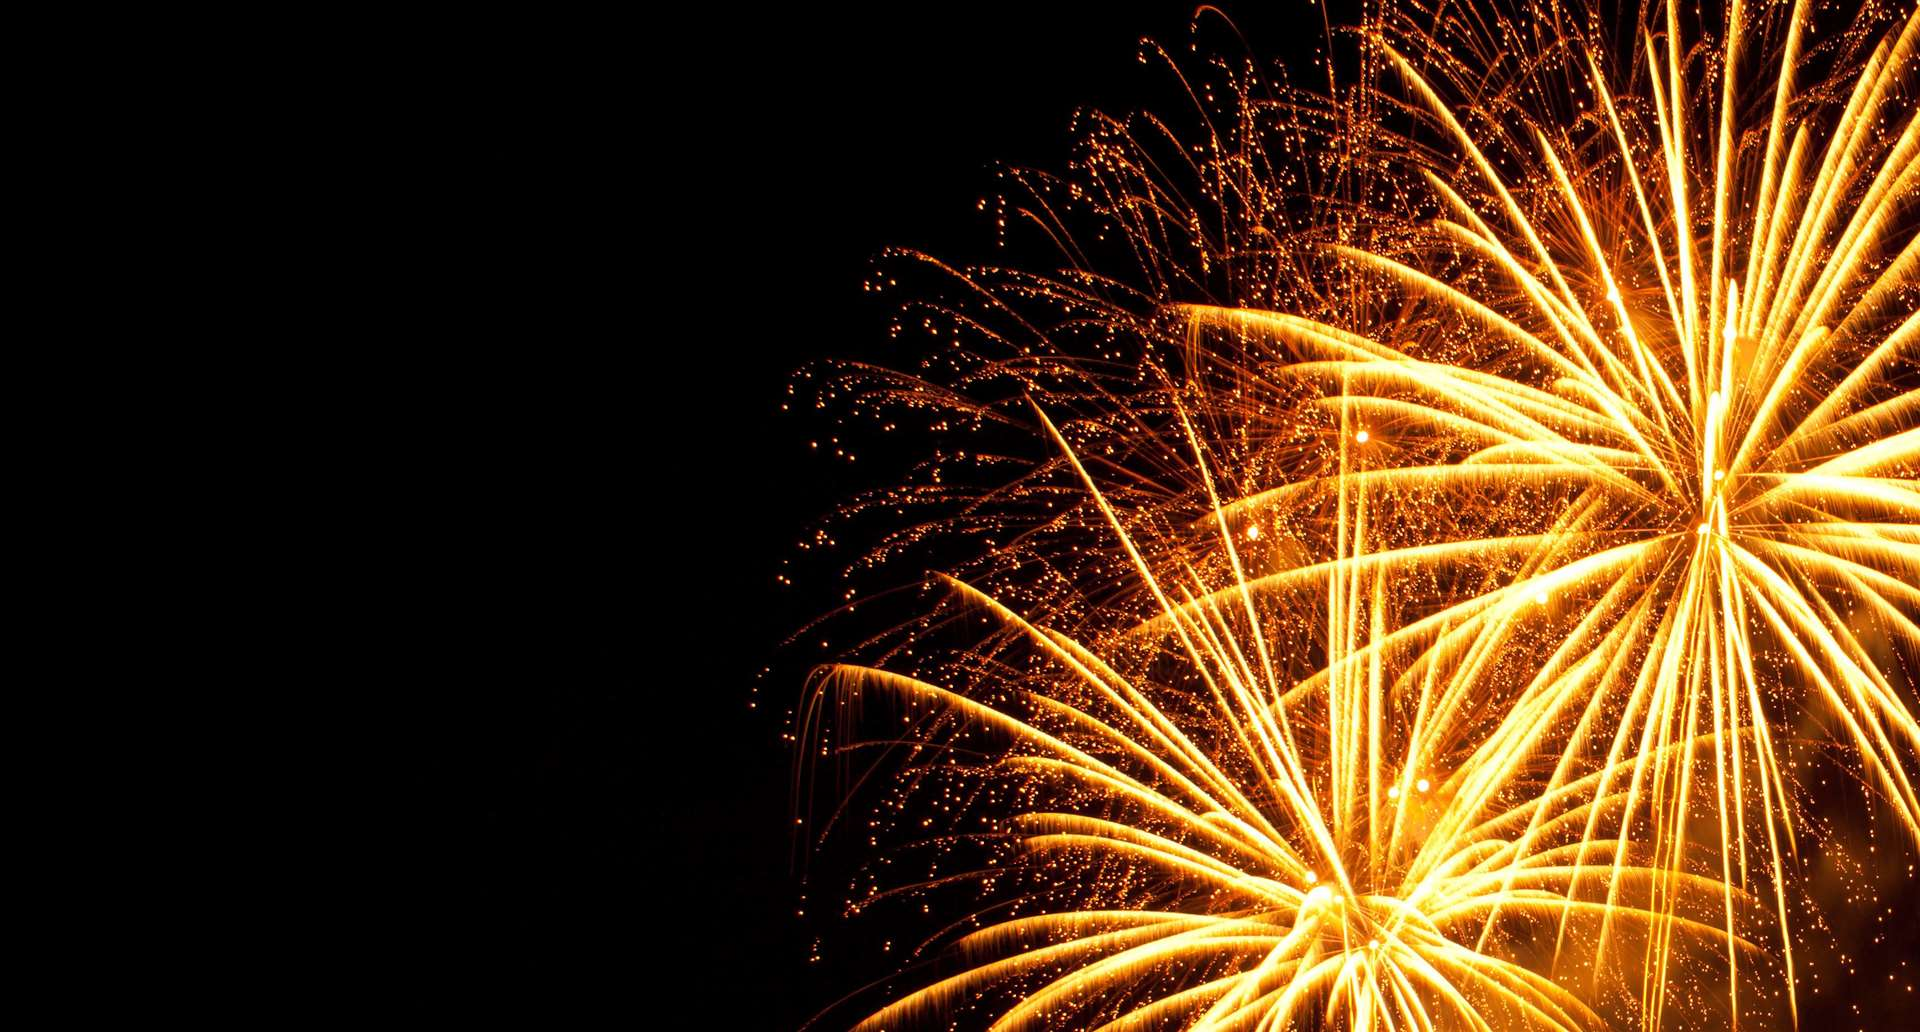 Fireworks can be used in the UK any time from 7am to 11pm.